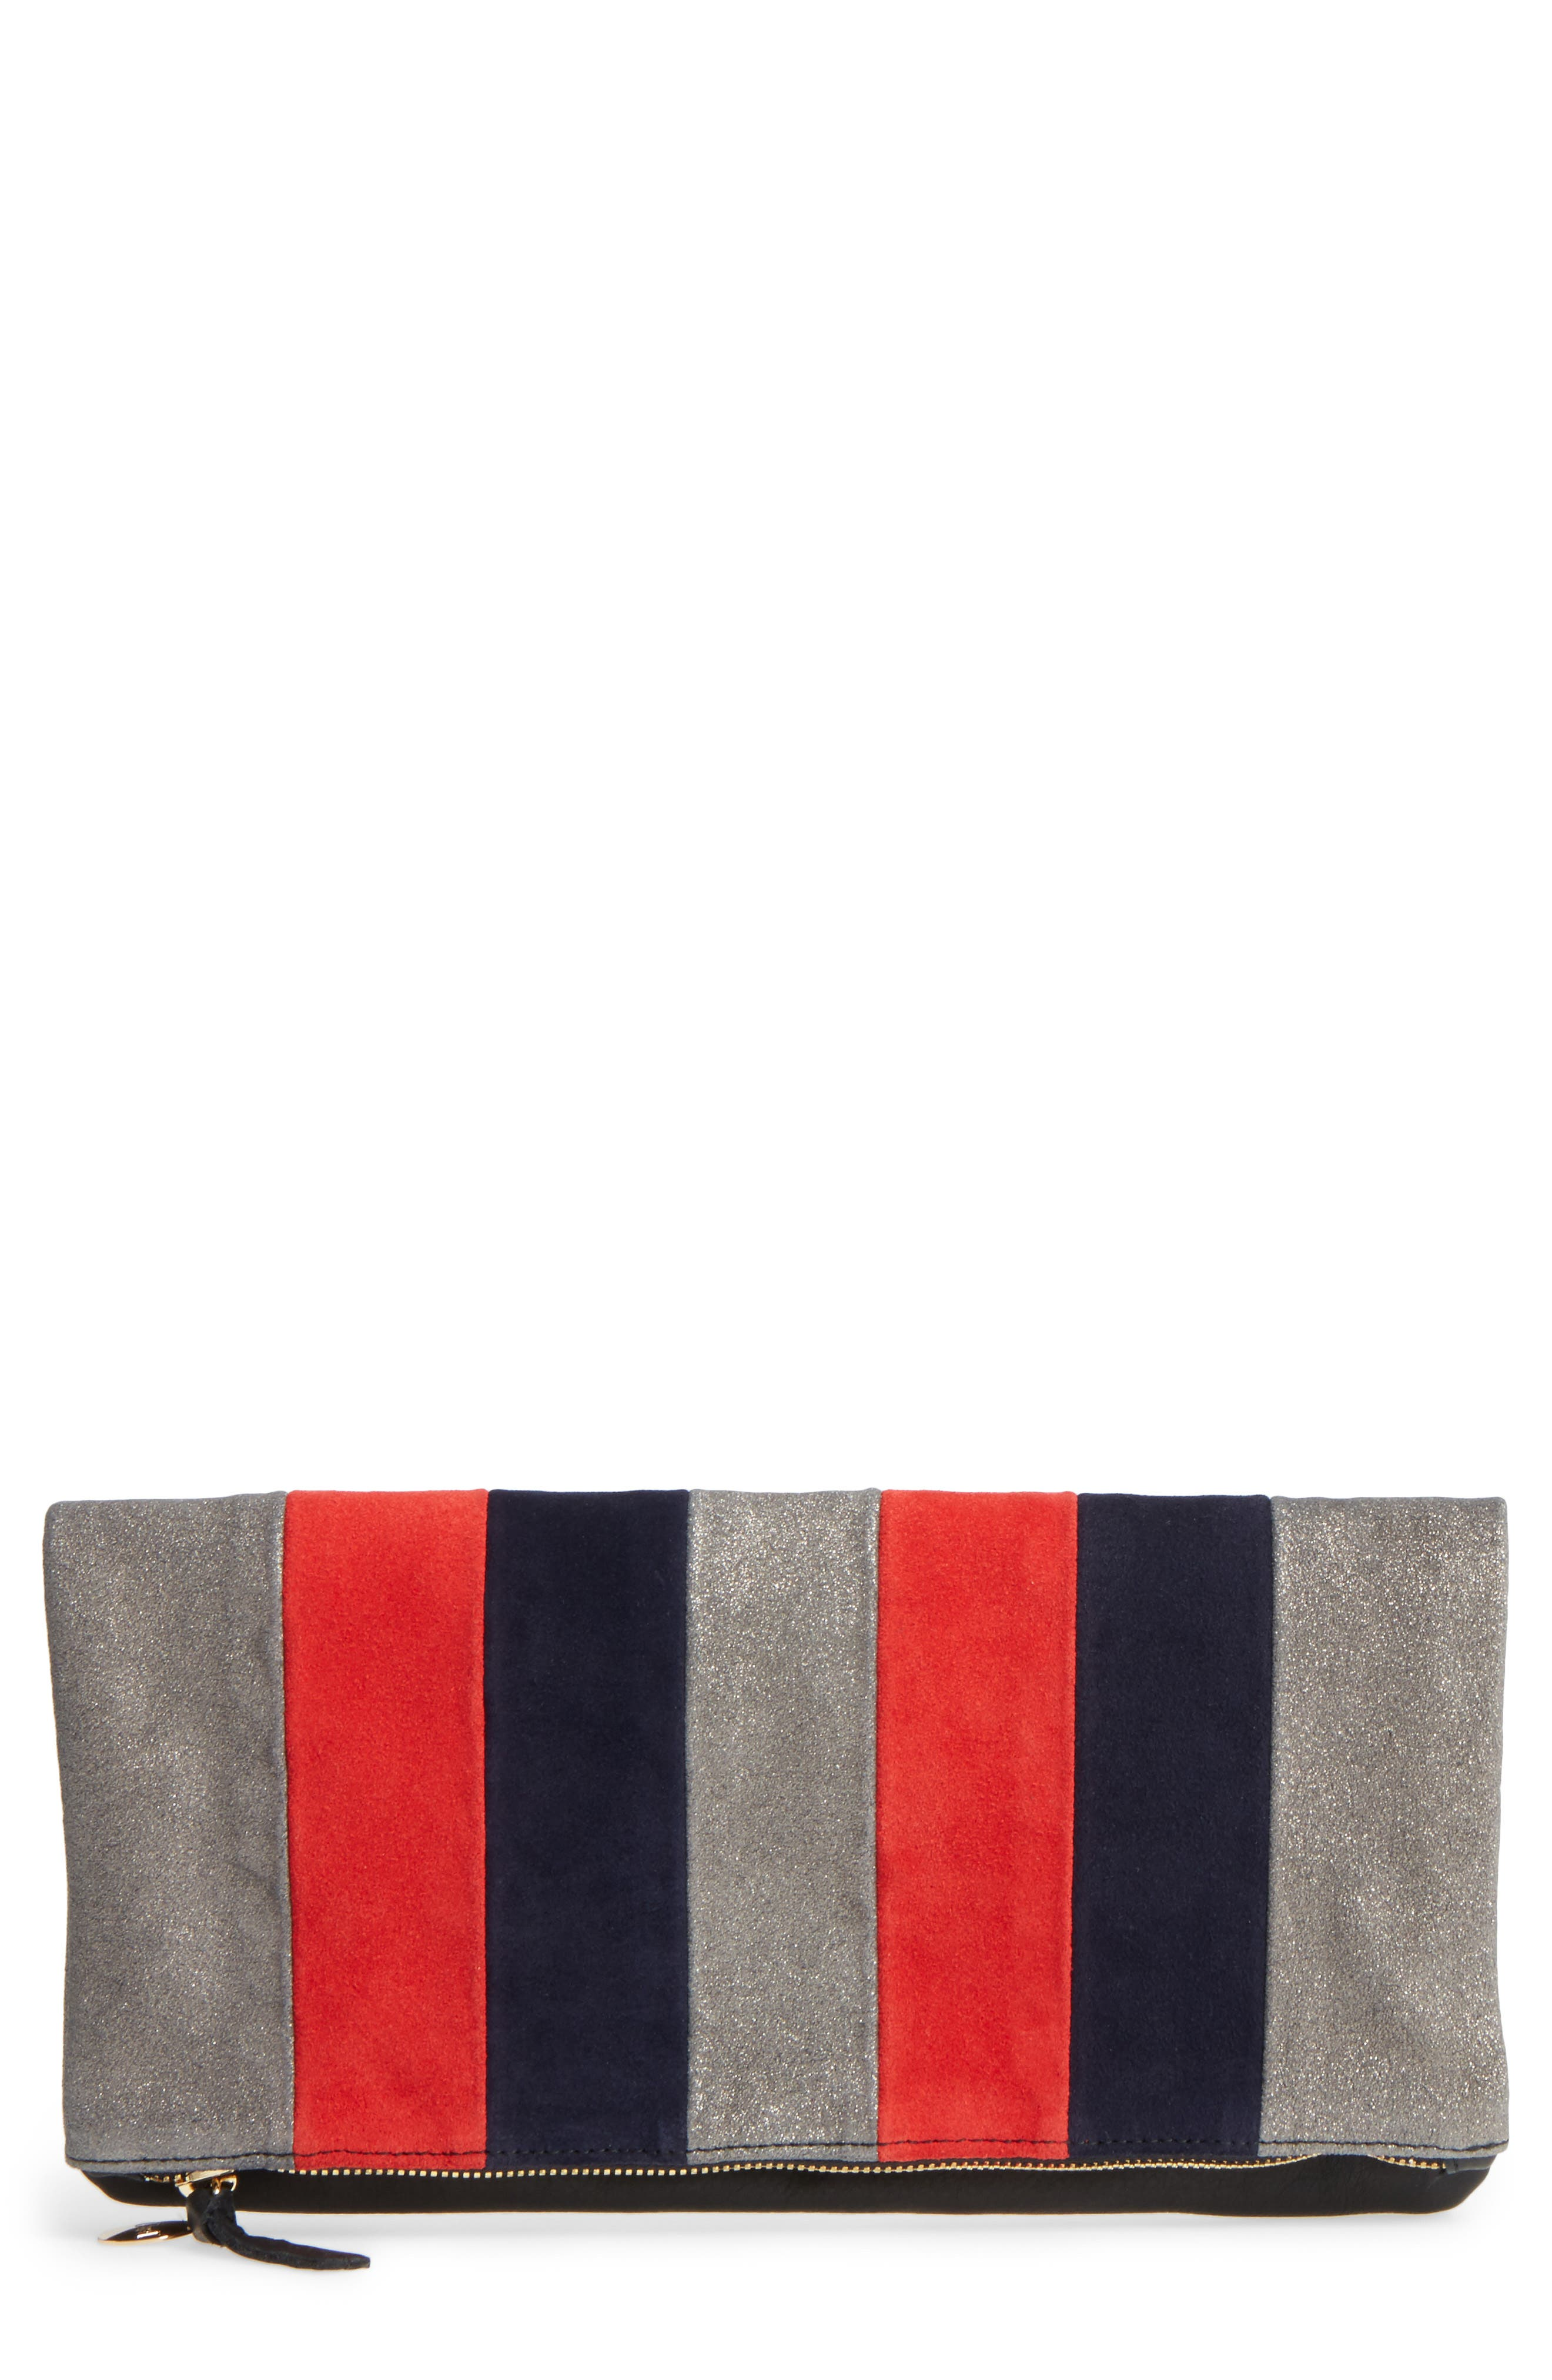 Mixed Media Stripe Leather Foldover Clutch,                             Main thumbnail 1, color,